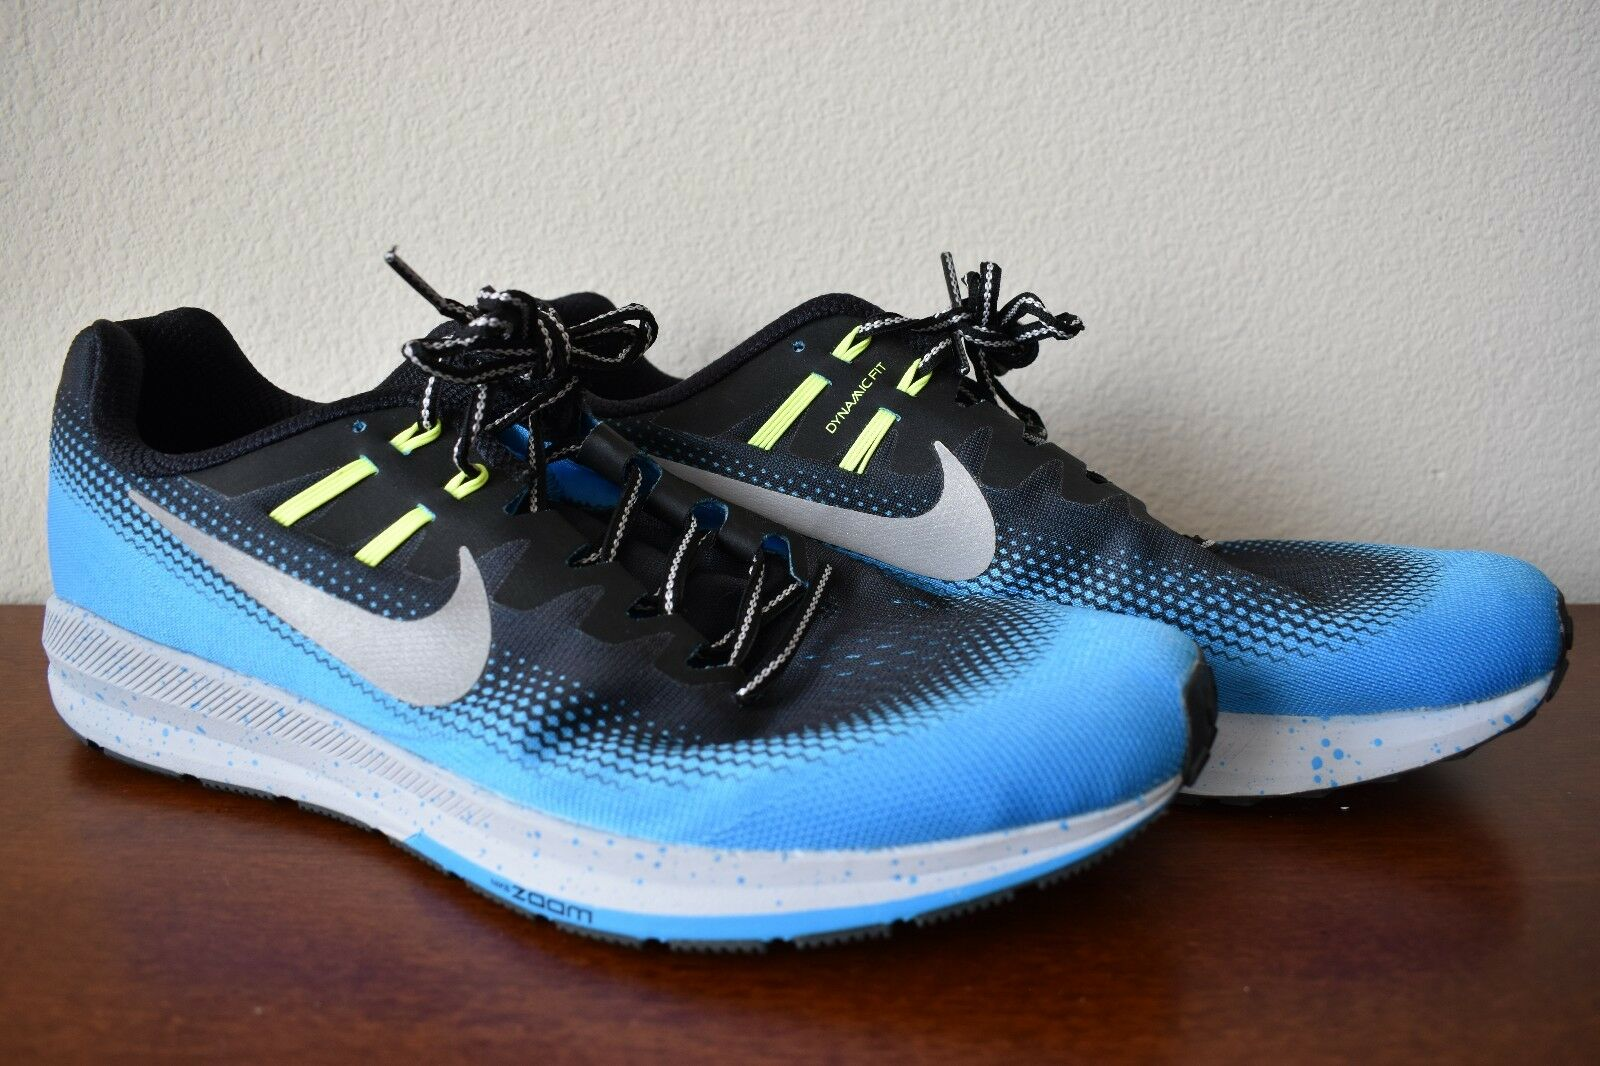 MEN'S NIKE ZOOM STRUCTURE 20 - NEEDS INSOLES - DYNAMIC FIT - H20 REPEL - SIZE 15